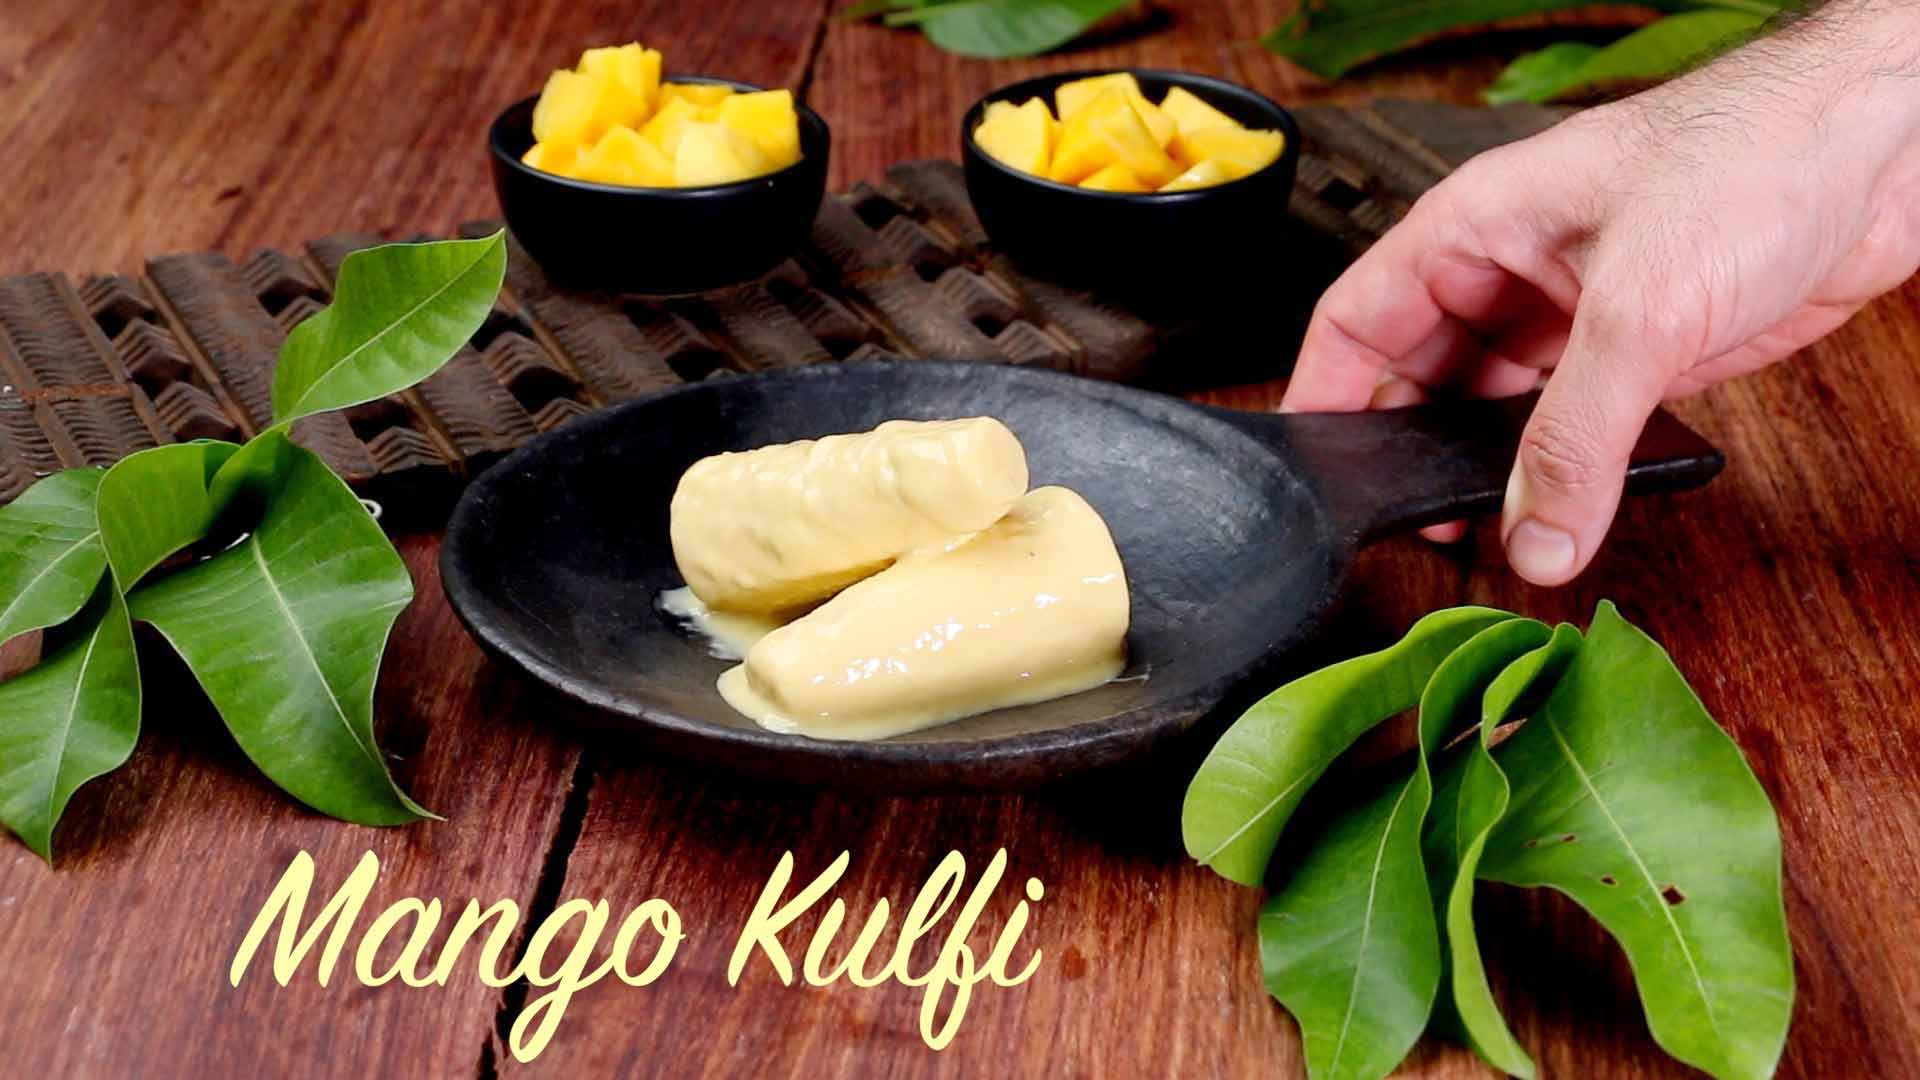 Mango Kulfi Recipe | Easy Homemade Kulfi with just 4 Ingredients